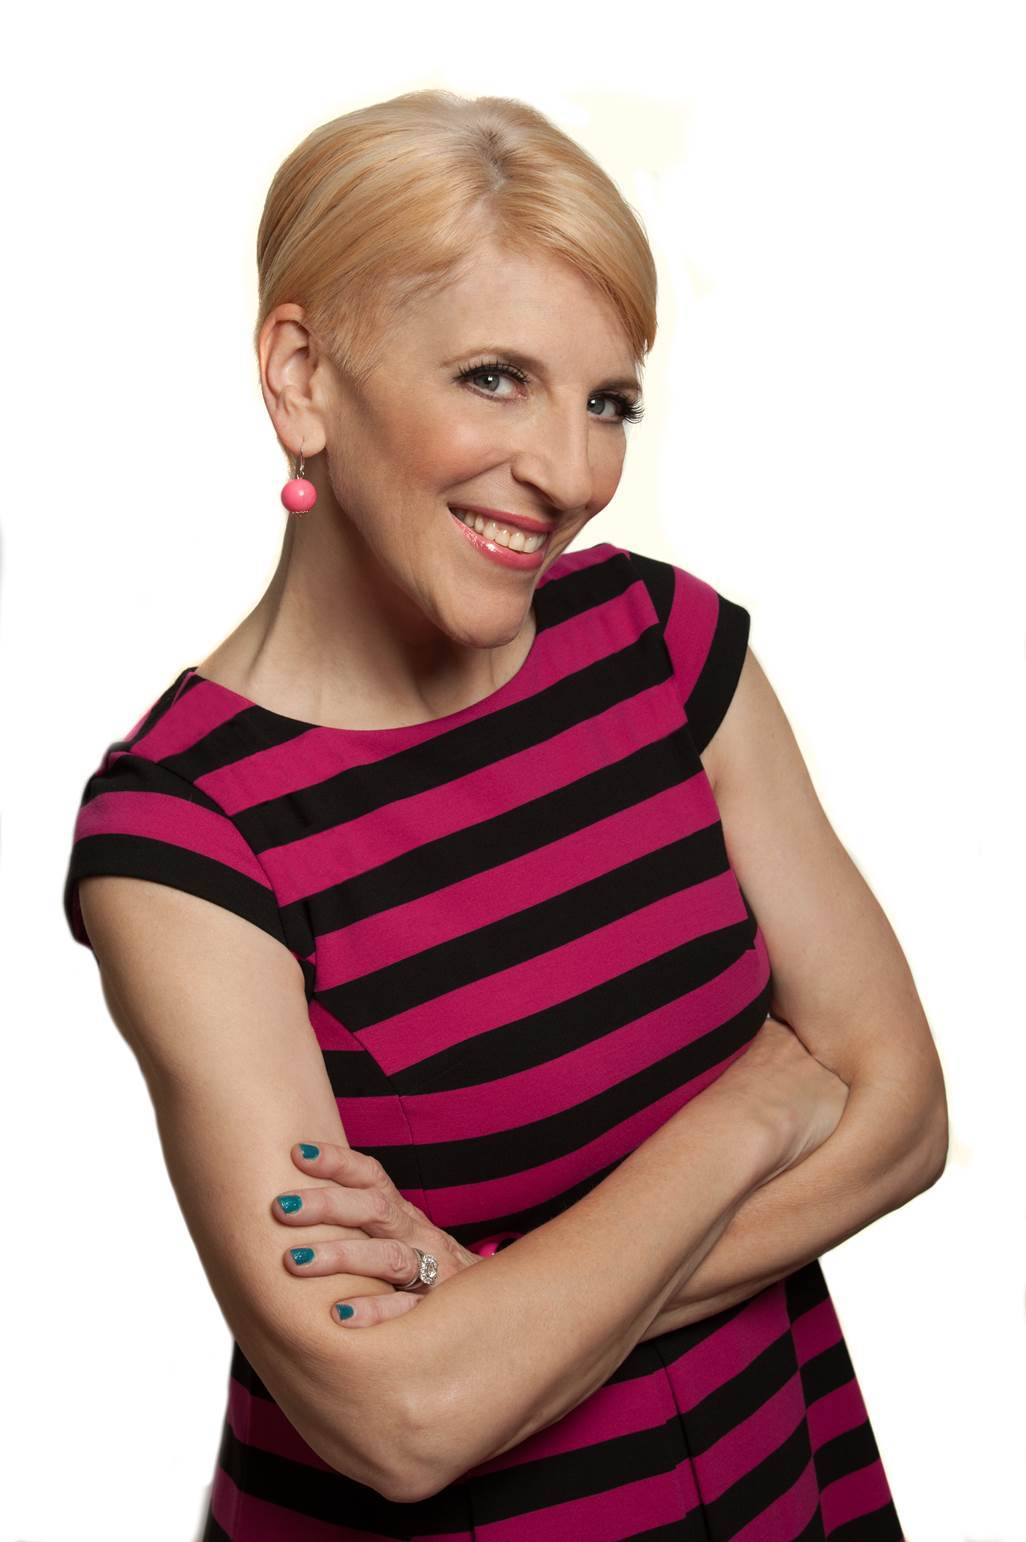 A woman in a pink striped shirt.